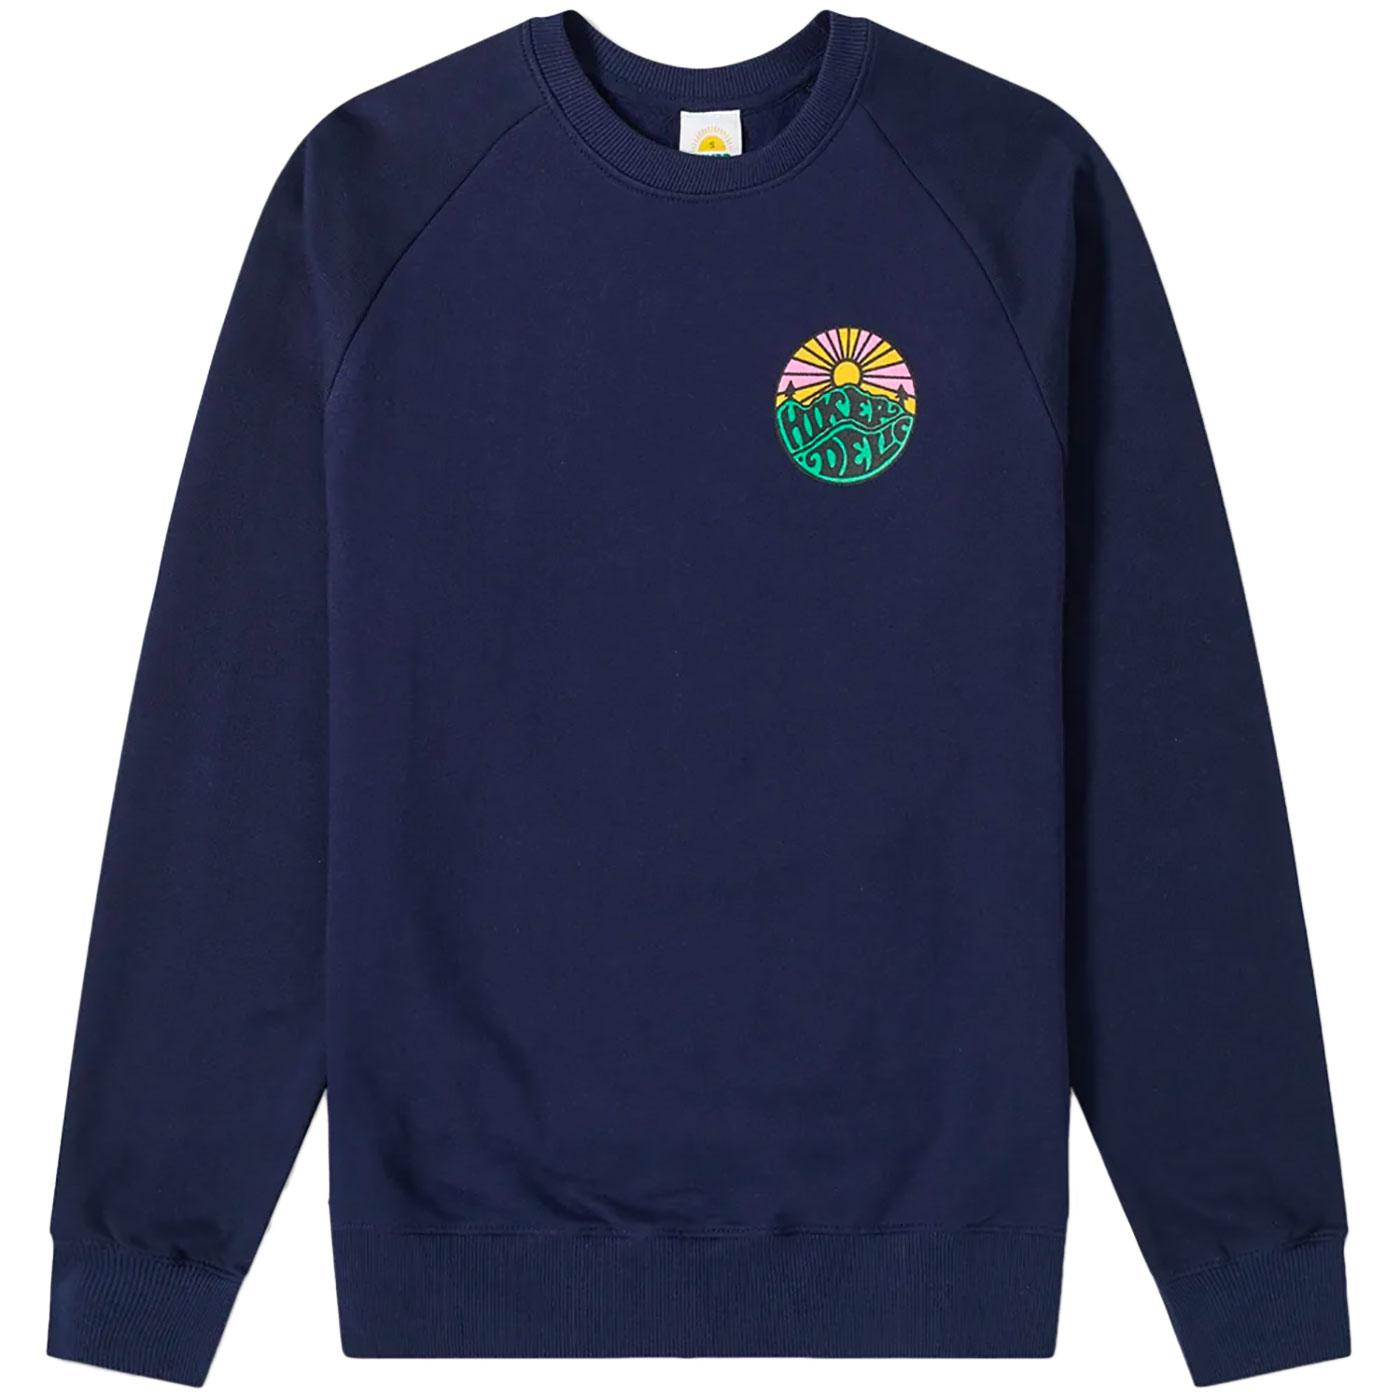 HIKERDELIC Retro Original Logo Sweatshirt (Navy)